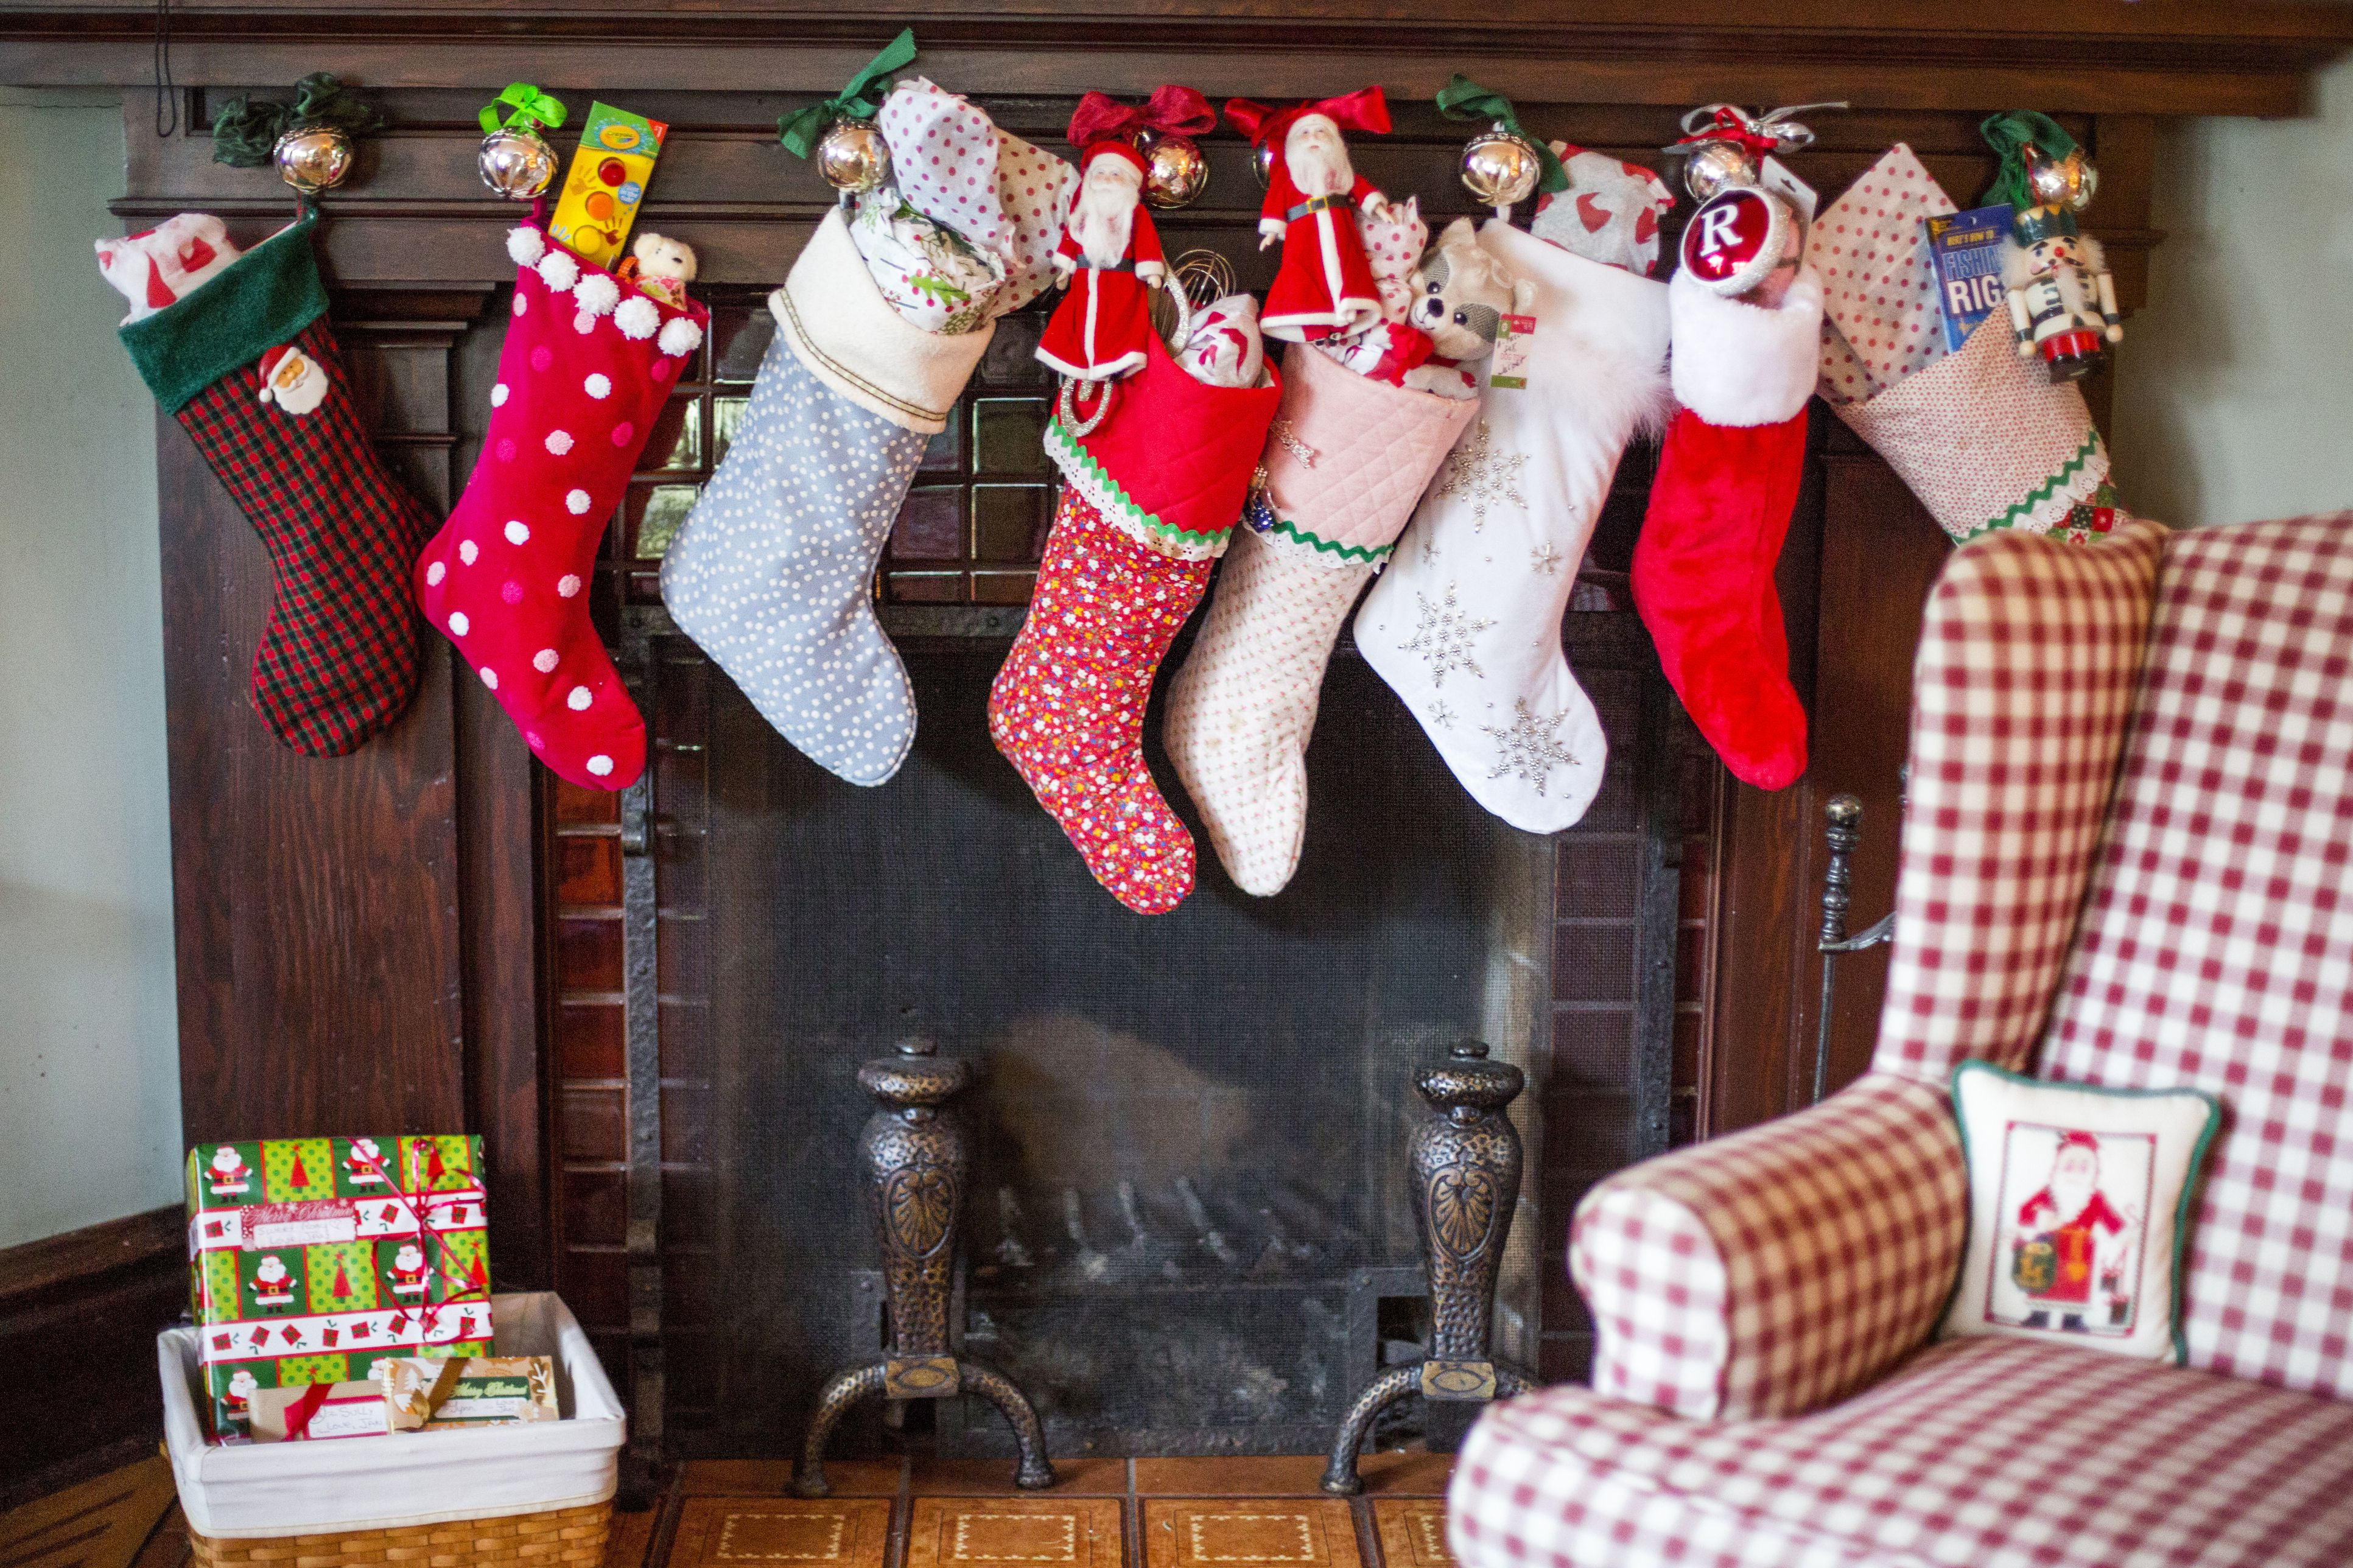 Cool Fireplace Tools Fireplace Design Ideas The 12 Best Stocking Stuffers To Buy In 2018